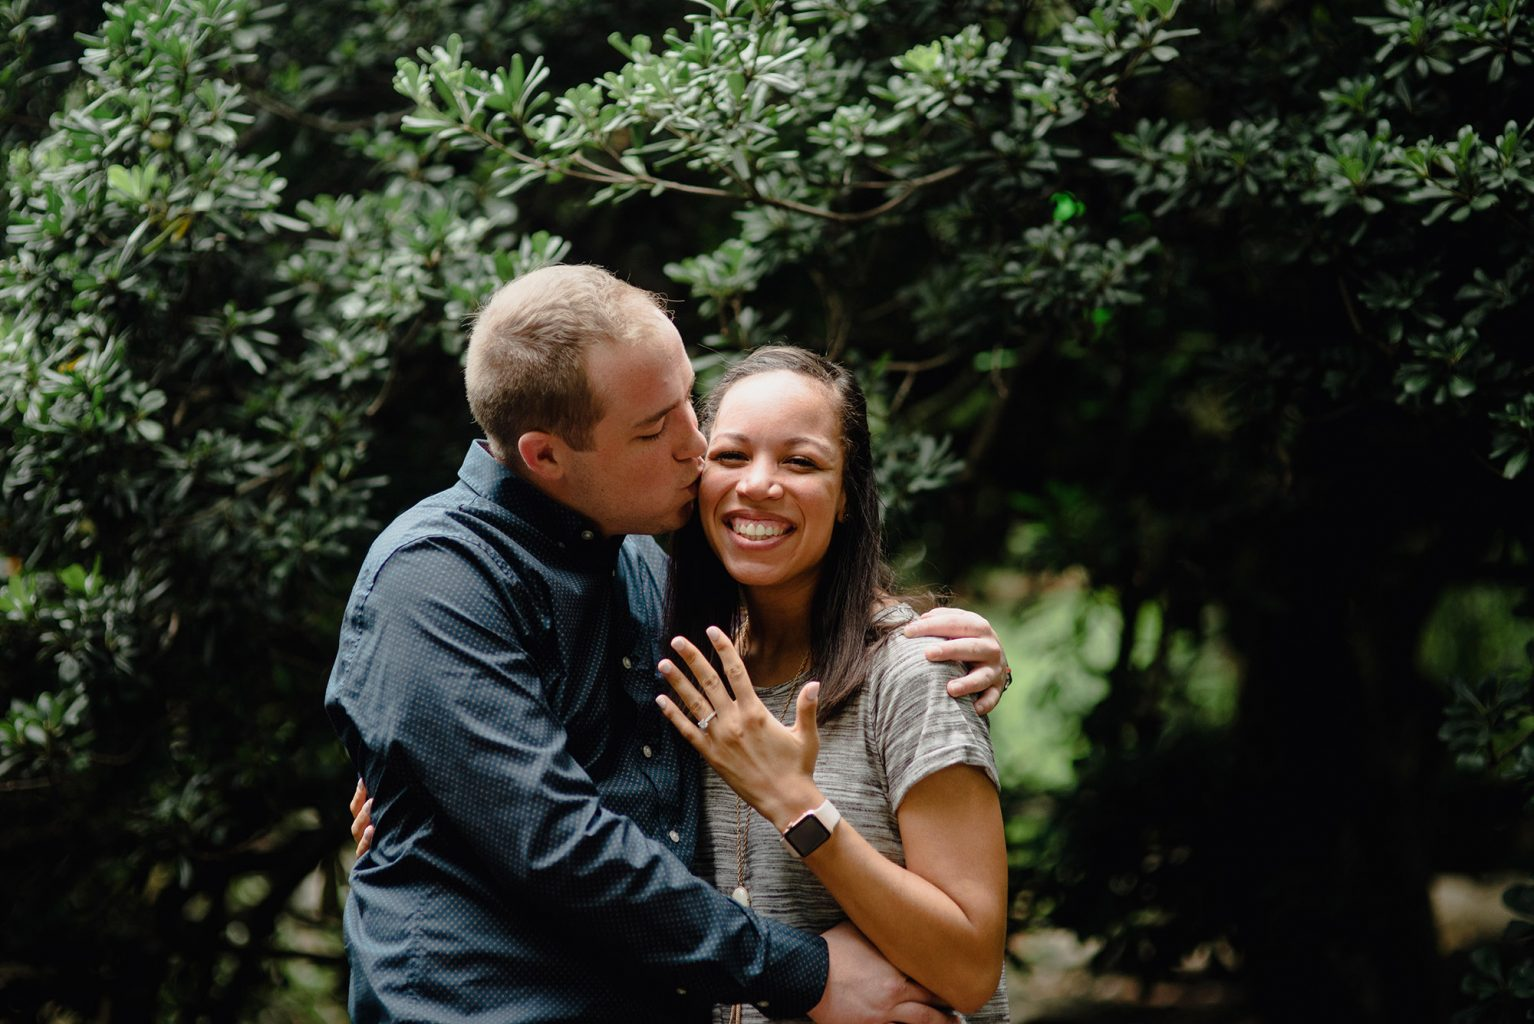 austin proposal photographer, proposal photography in austin, where to propose in austin